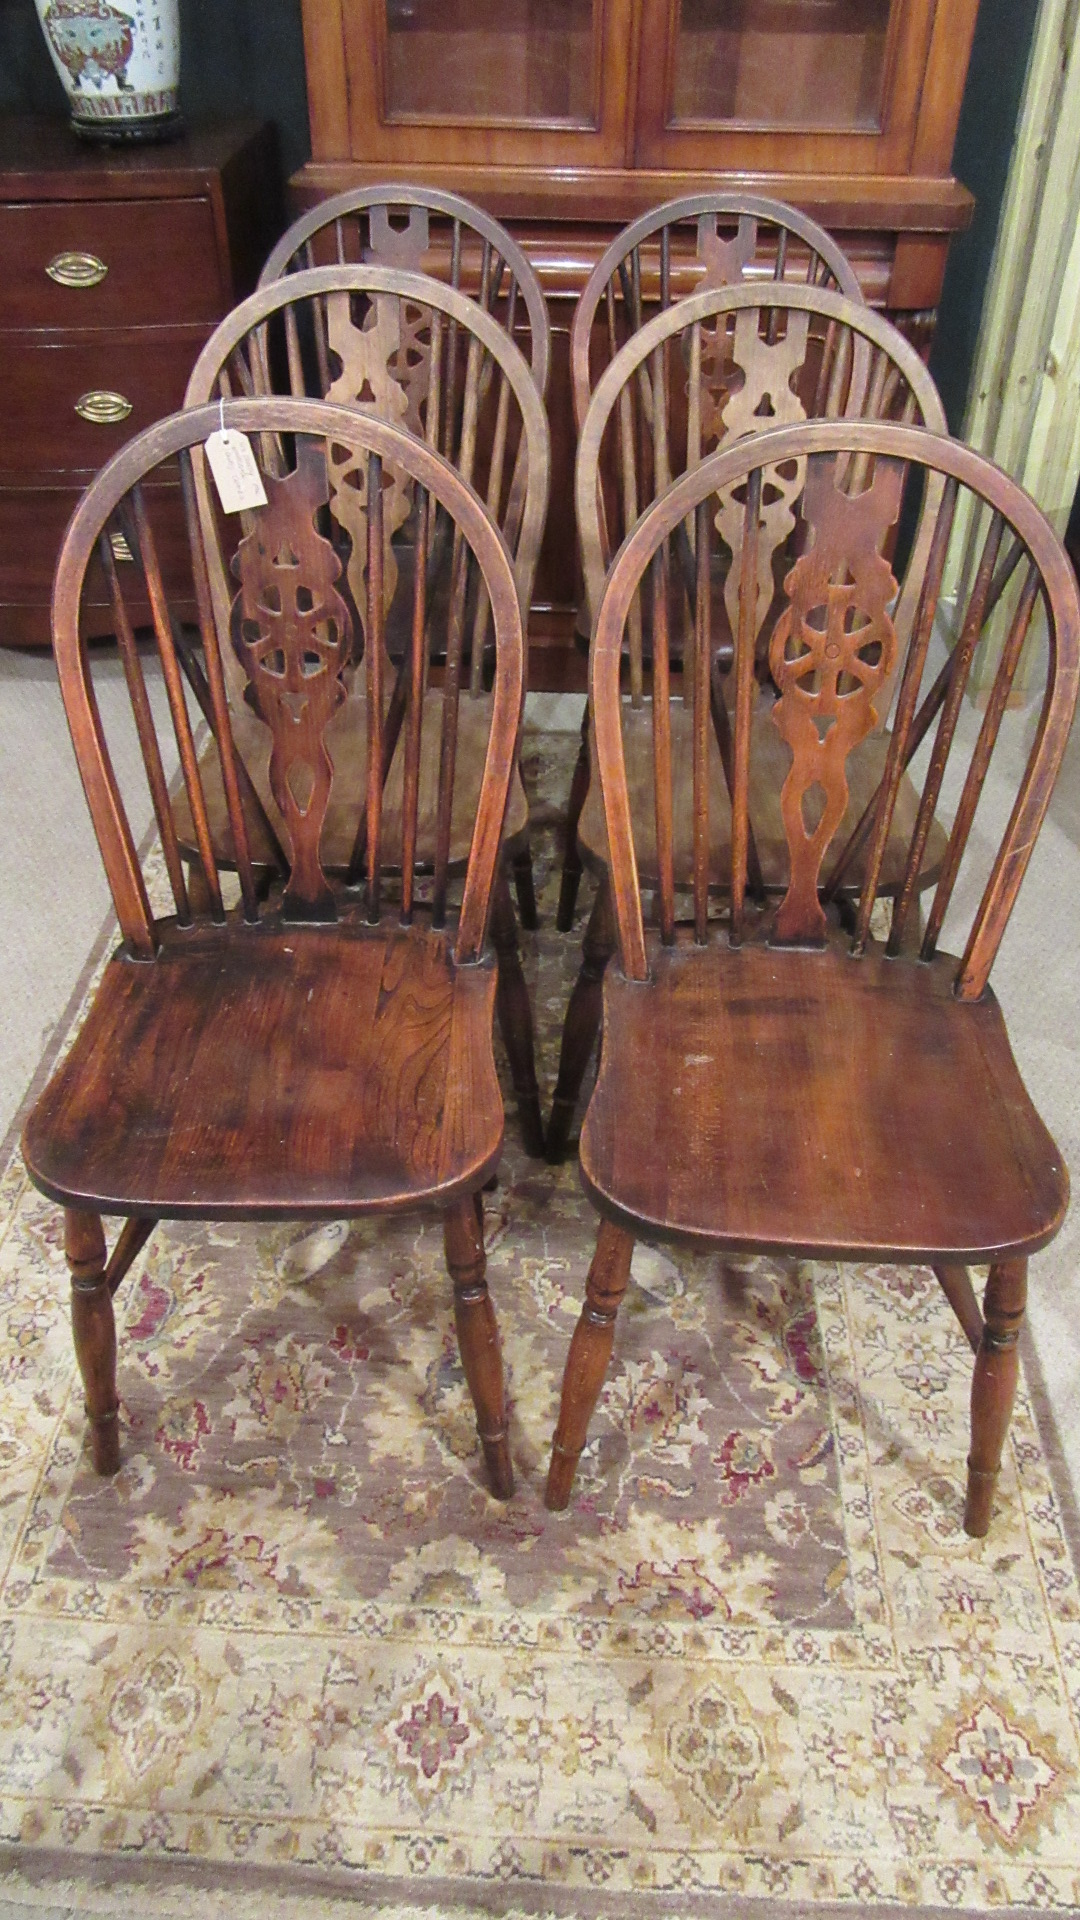 SIX ANTIQUE COUNTRY OAK WHEEL BACK DINING CHAIRS